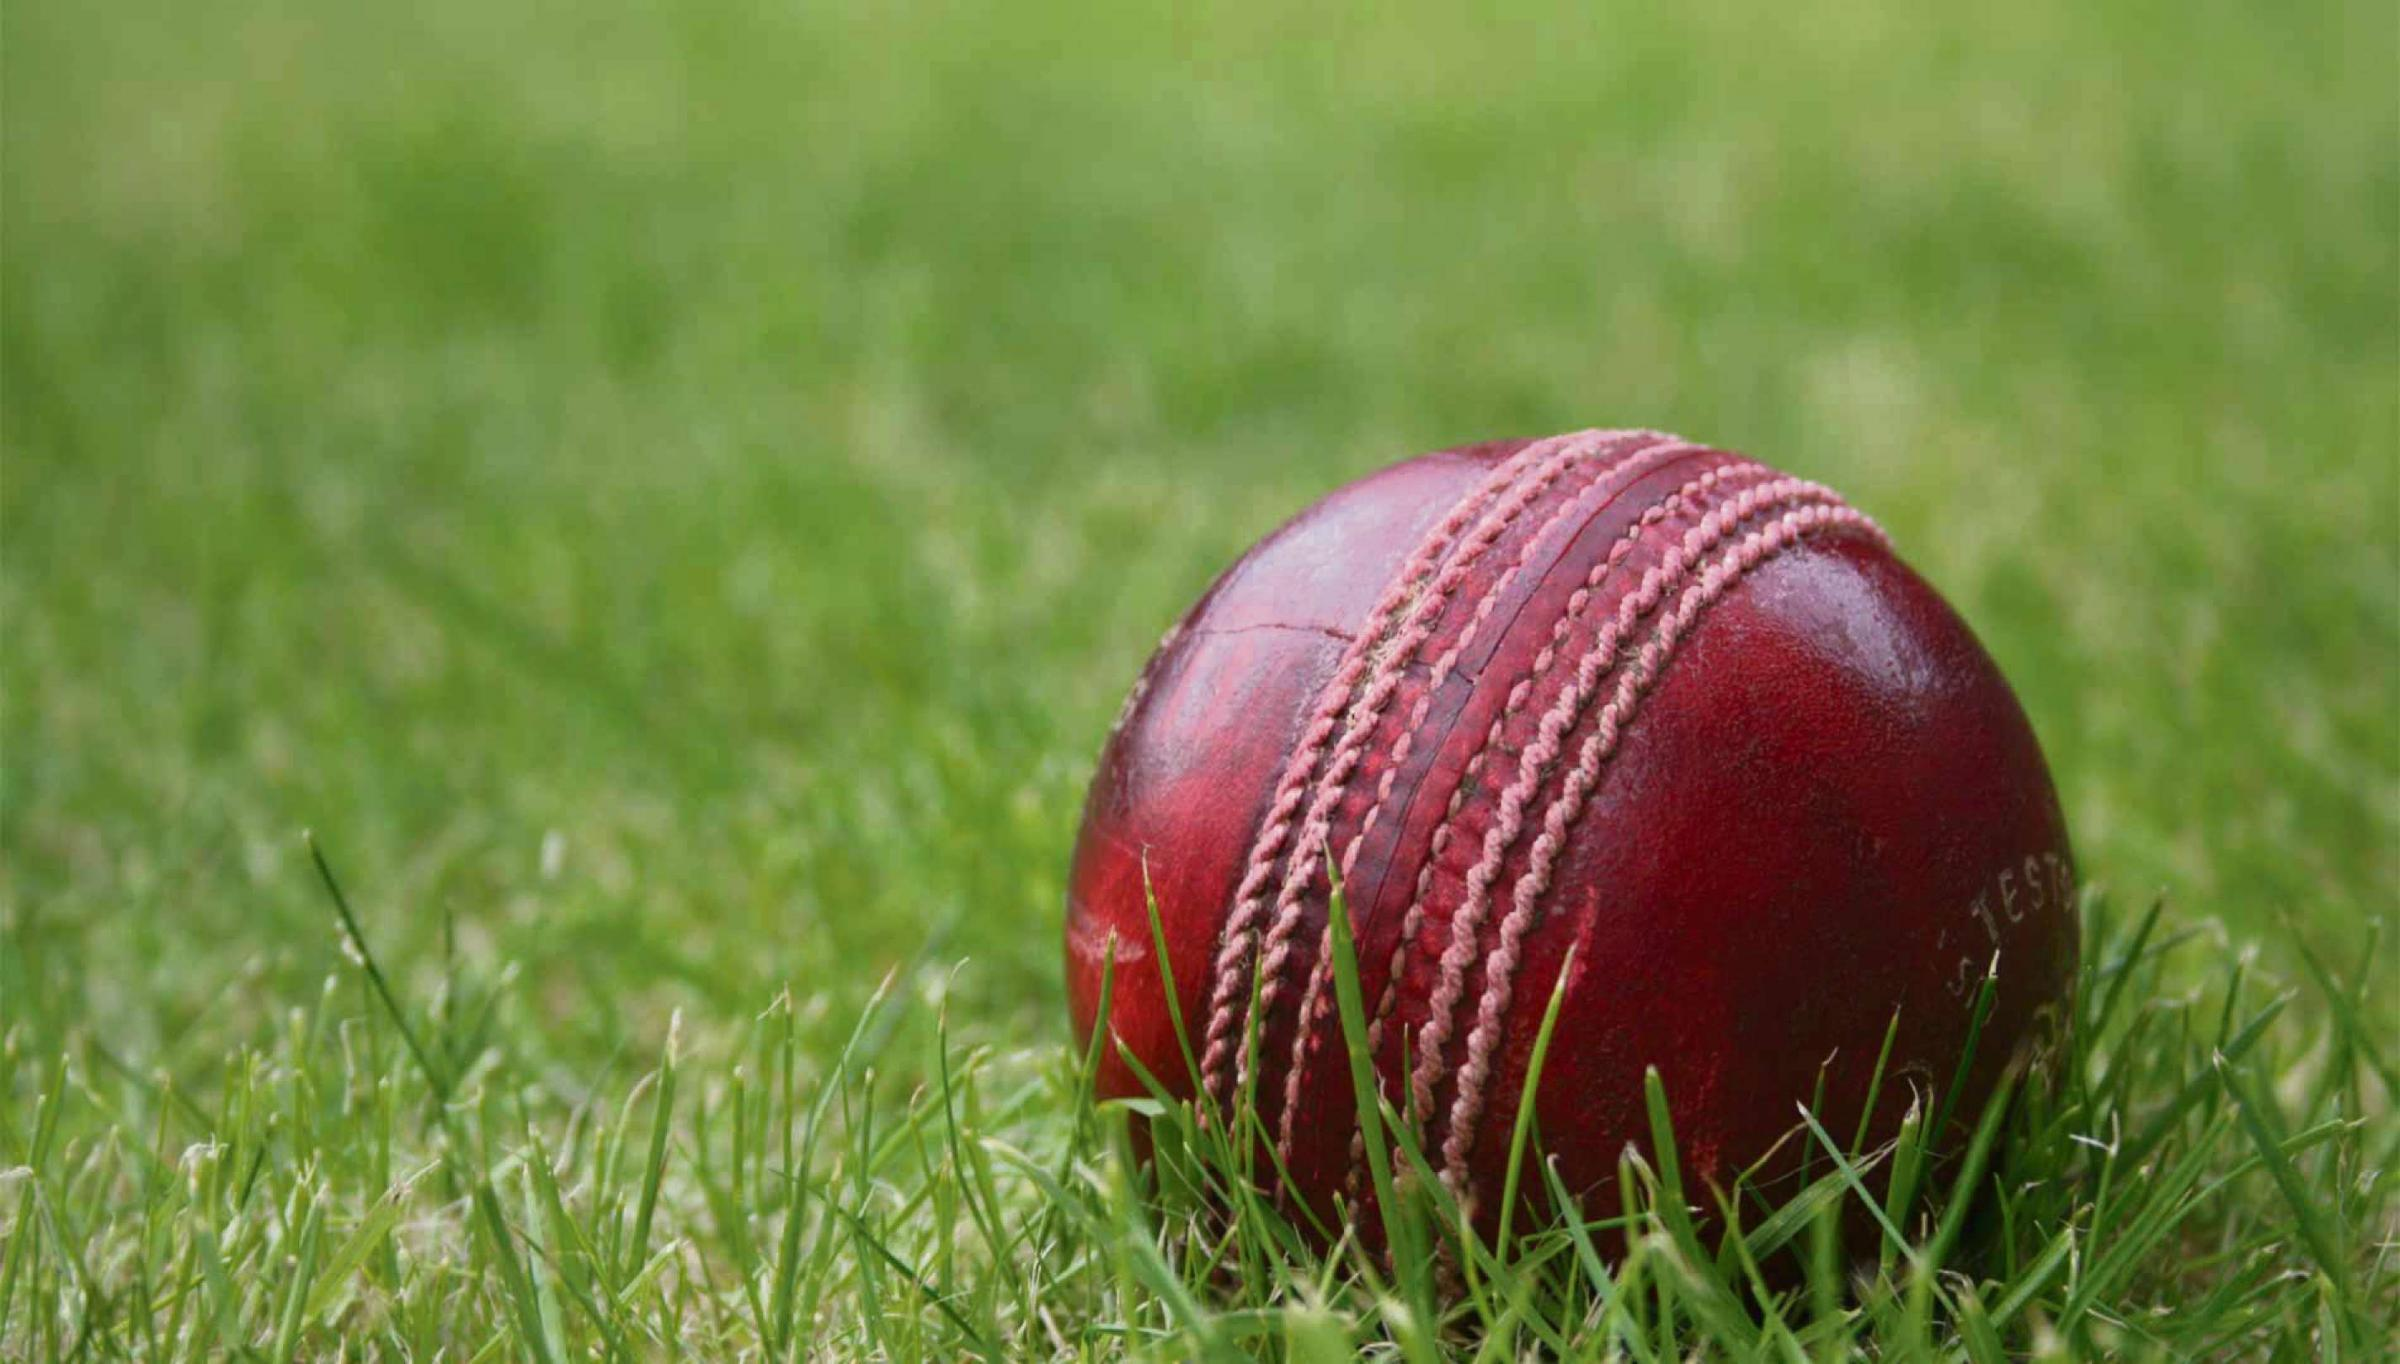 Vale of Leven Cricket Club is looking for new members from across West Dunbartonshire